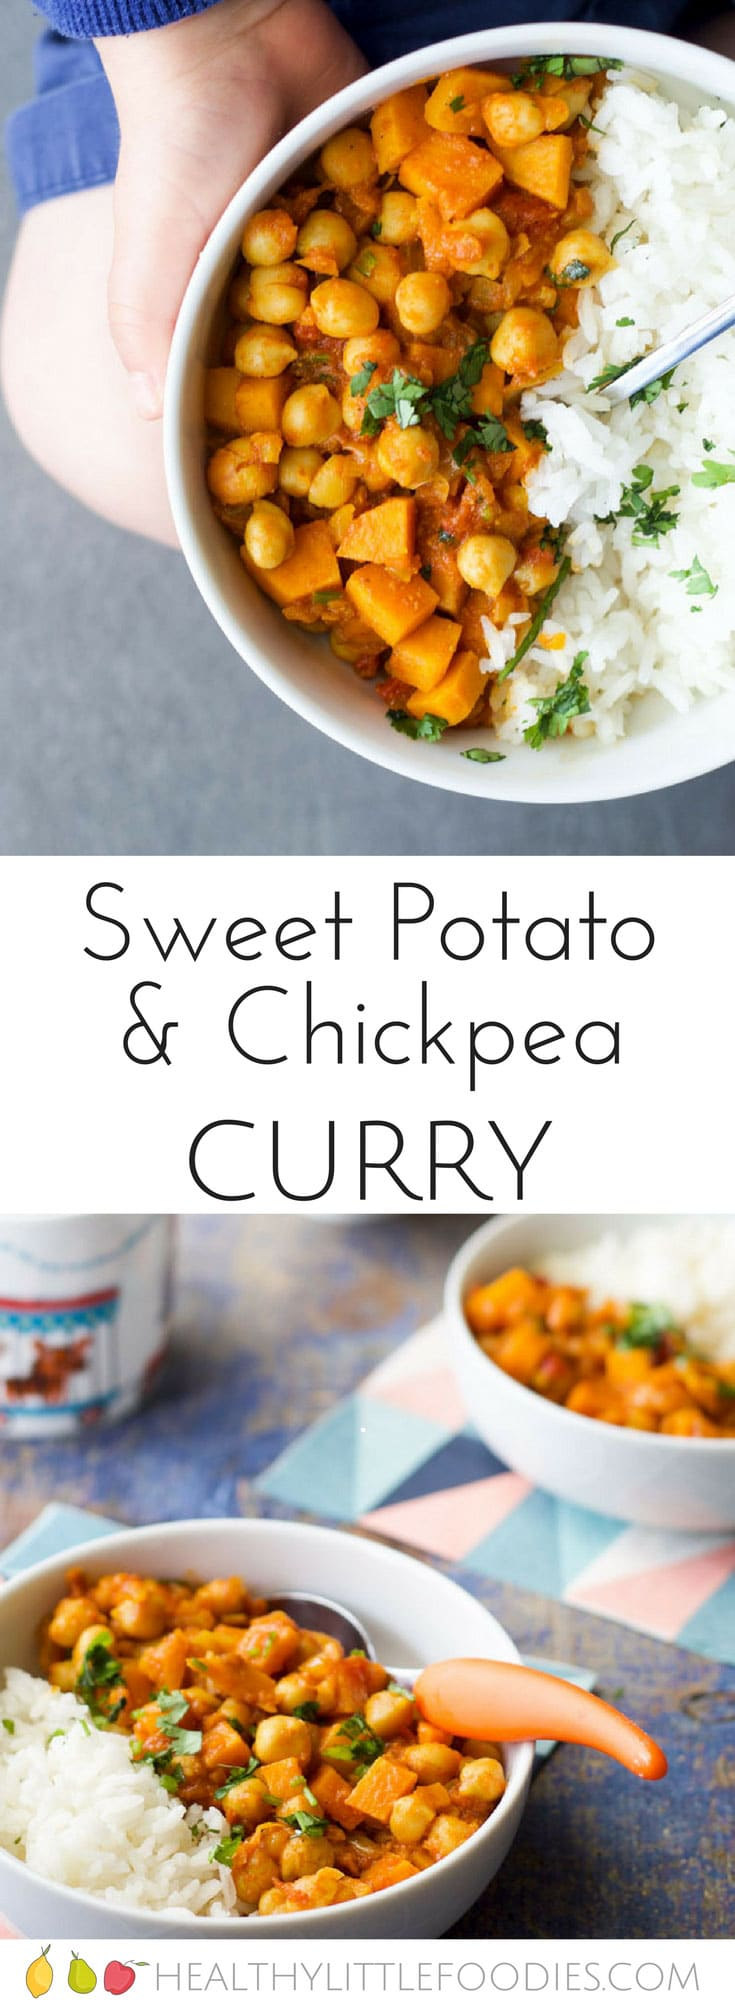 sweet potato and chickpea curry, for kids. Sweet potato adds a hint of sweetness which works great with the spices. A quick and tasty meal for the whole family.